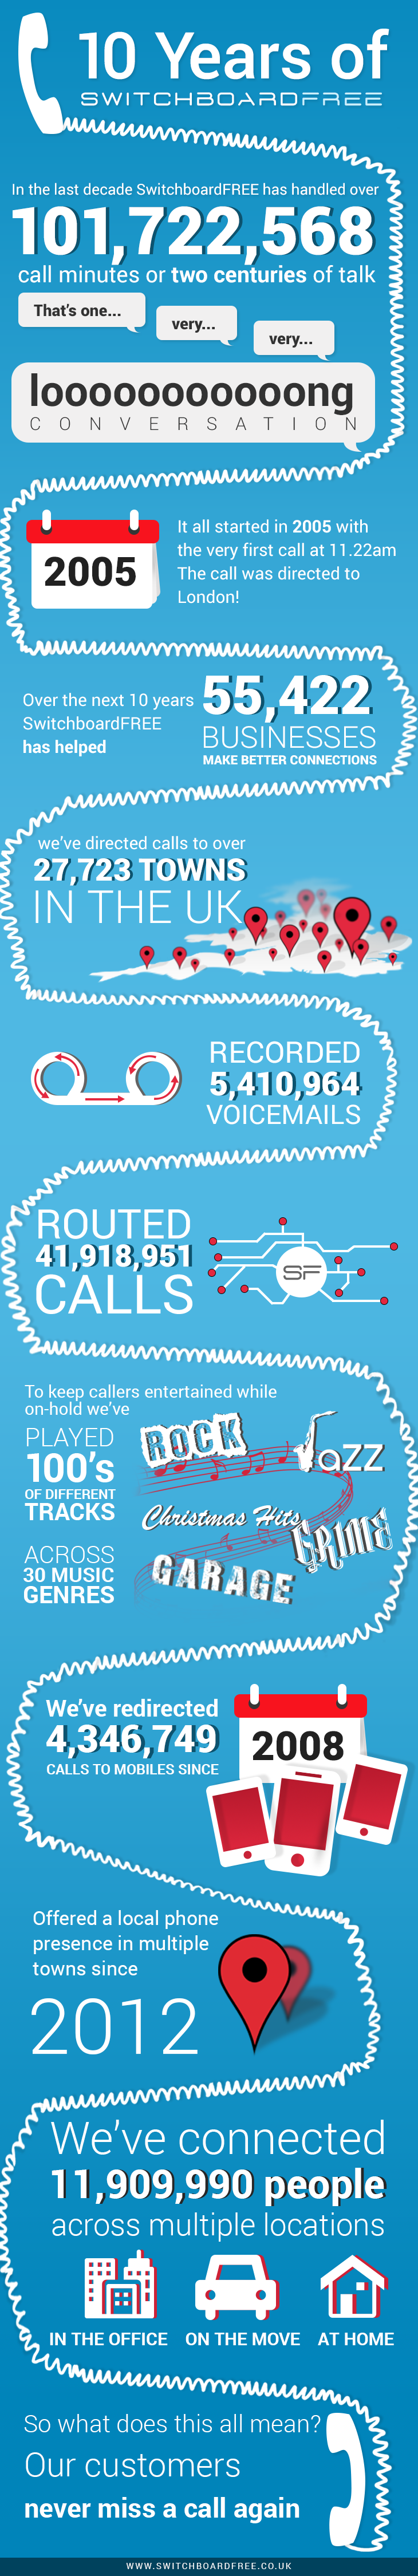 10 years of SwitchboardFREE infographic story